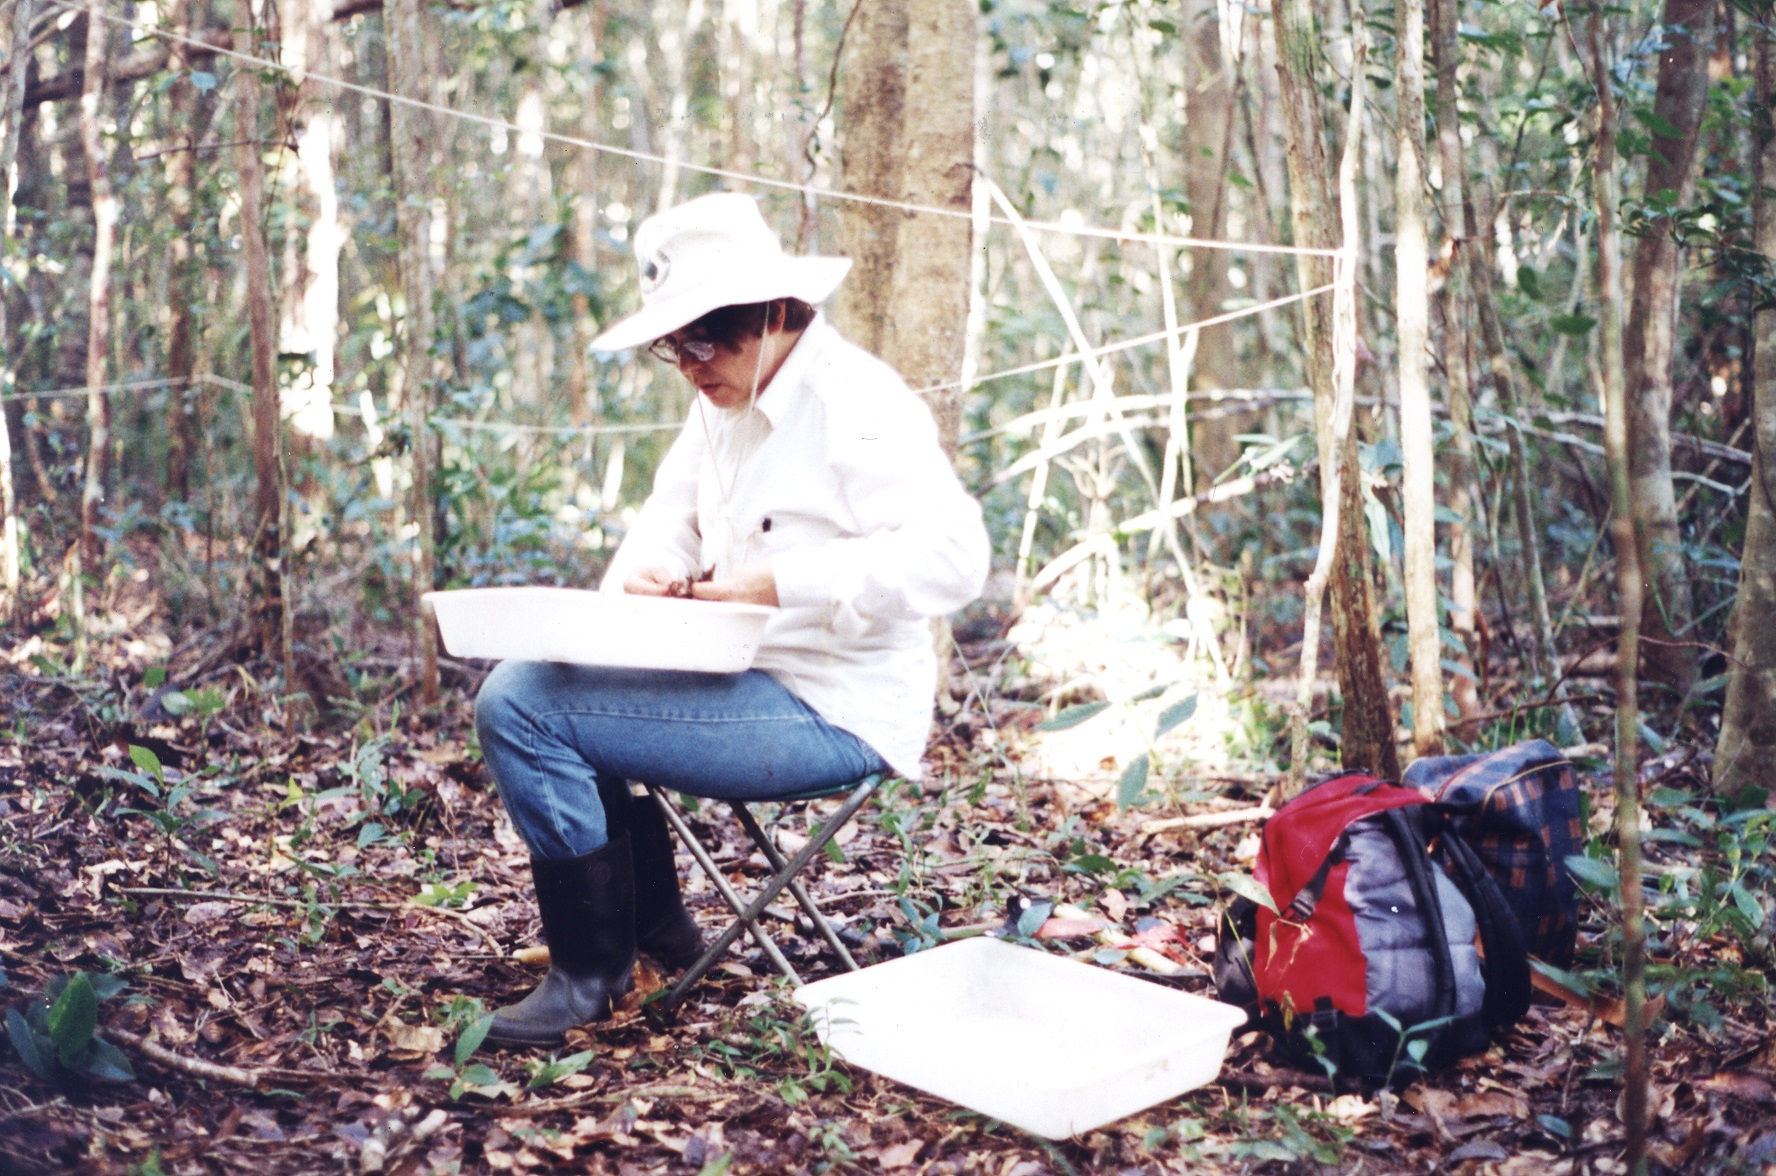 The lead author sorting samples in the Reserva Ecológica do Crasto (REC), Santa Luzia do Itanhy, Sergipe, Brazil